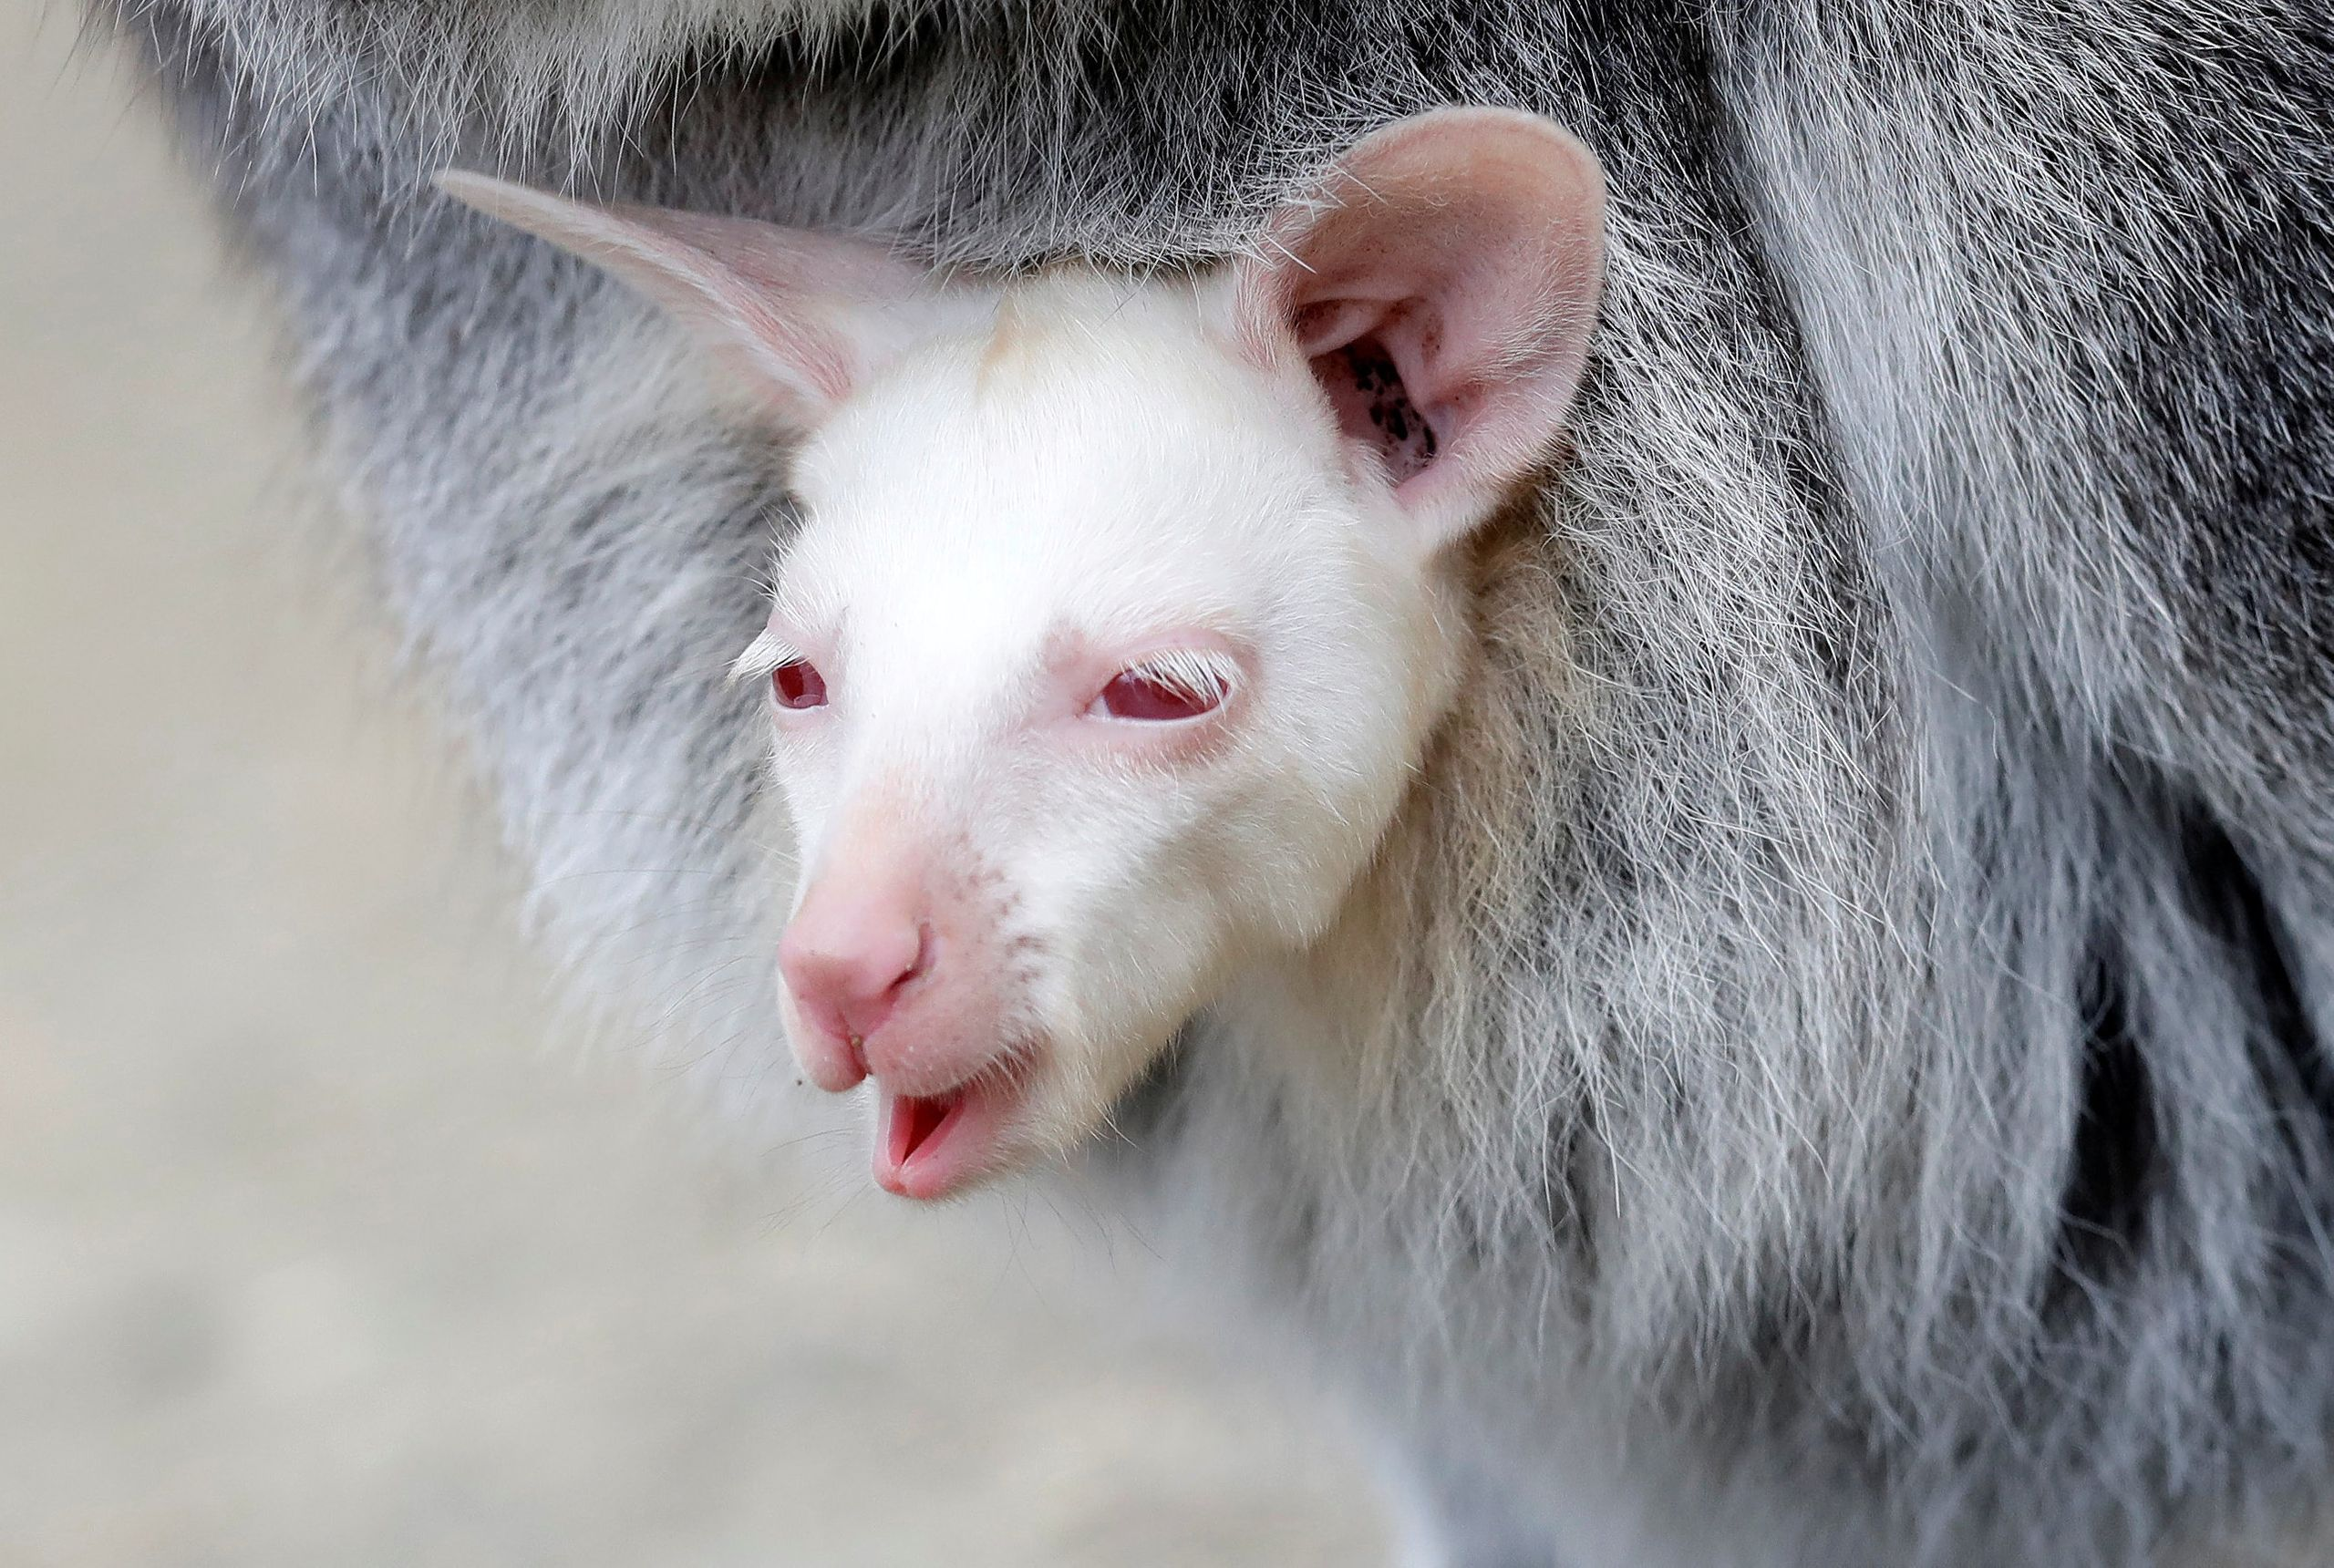 A newly born albino red-necked wallaby joey peeks out of its mother's pouch at a zoo in Decin, Czech Republic, March 13, 2019